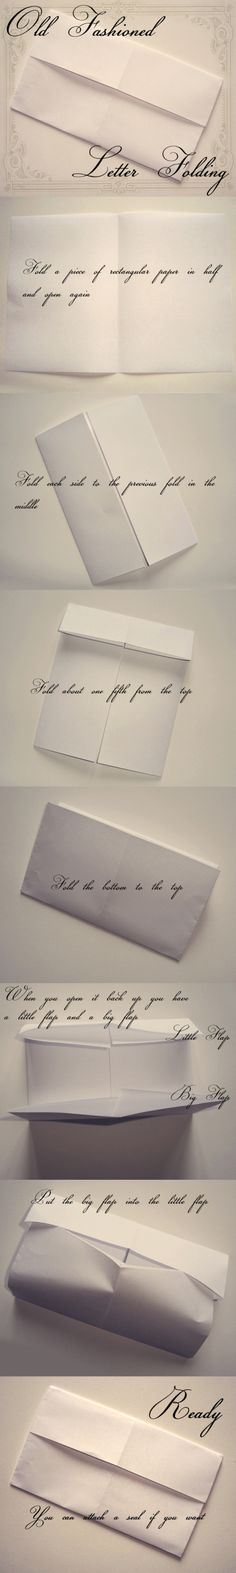 letter the old fashioned way - just like in Jane Austen films.Folding letter the old fashioned way - just like in Jane Austen films. Jane Austen, Diy Gifts Just Because, Letter Folding, Bujo, Handwritten Letters, Letter Writing, Mail Art, Love Letters, Thank You Gifts